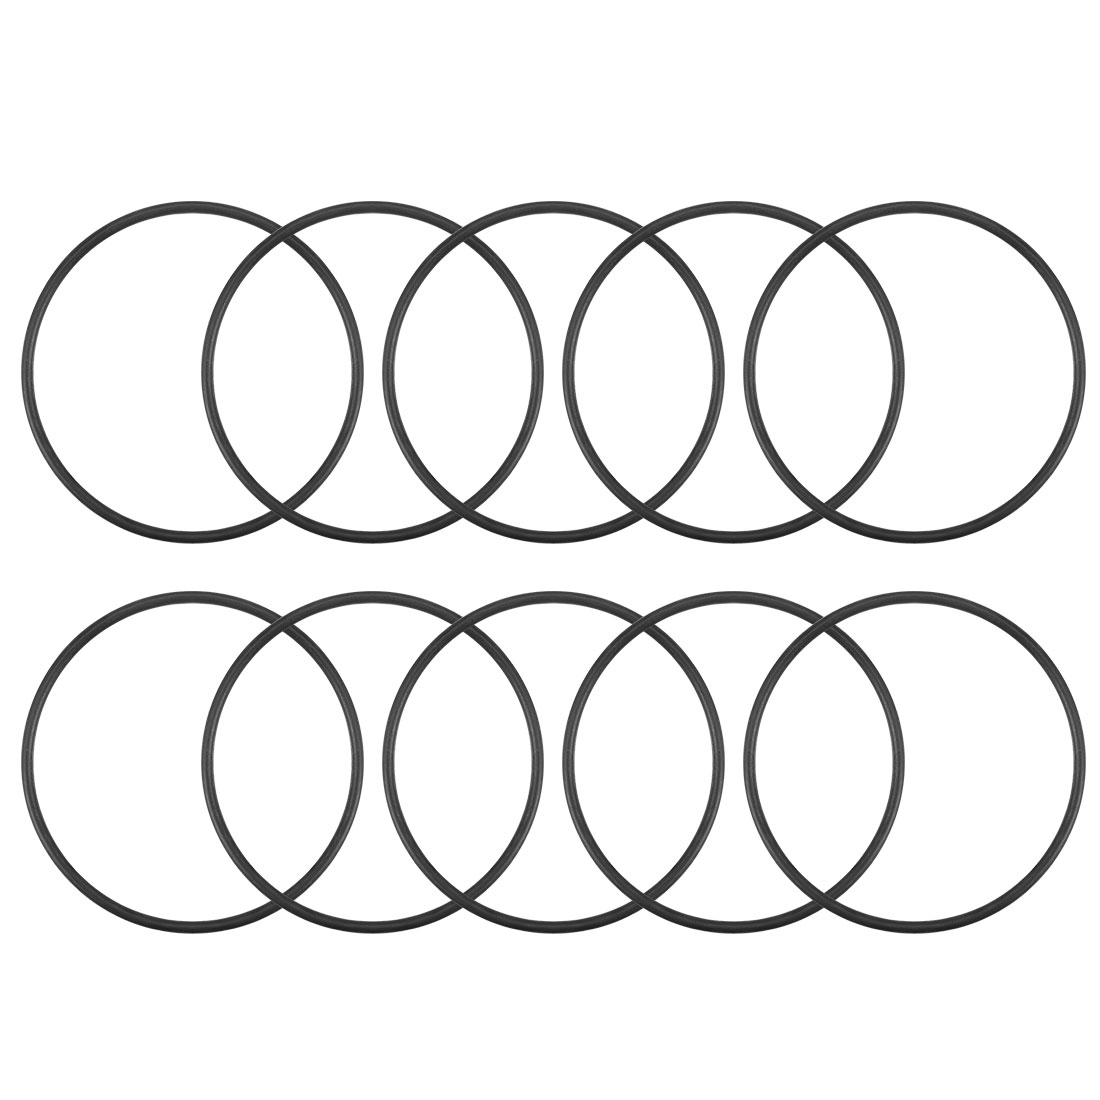 O-Rings Nitrile Rubber 43.7mm x 47.3mm x 1.8mm Round Seal Gasket 10Pcs